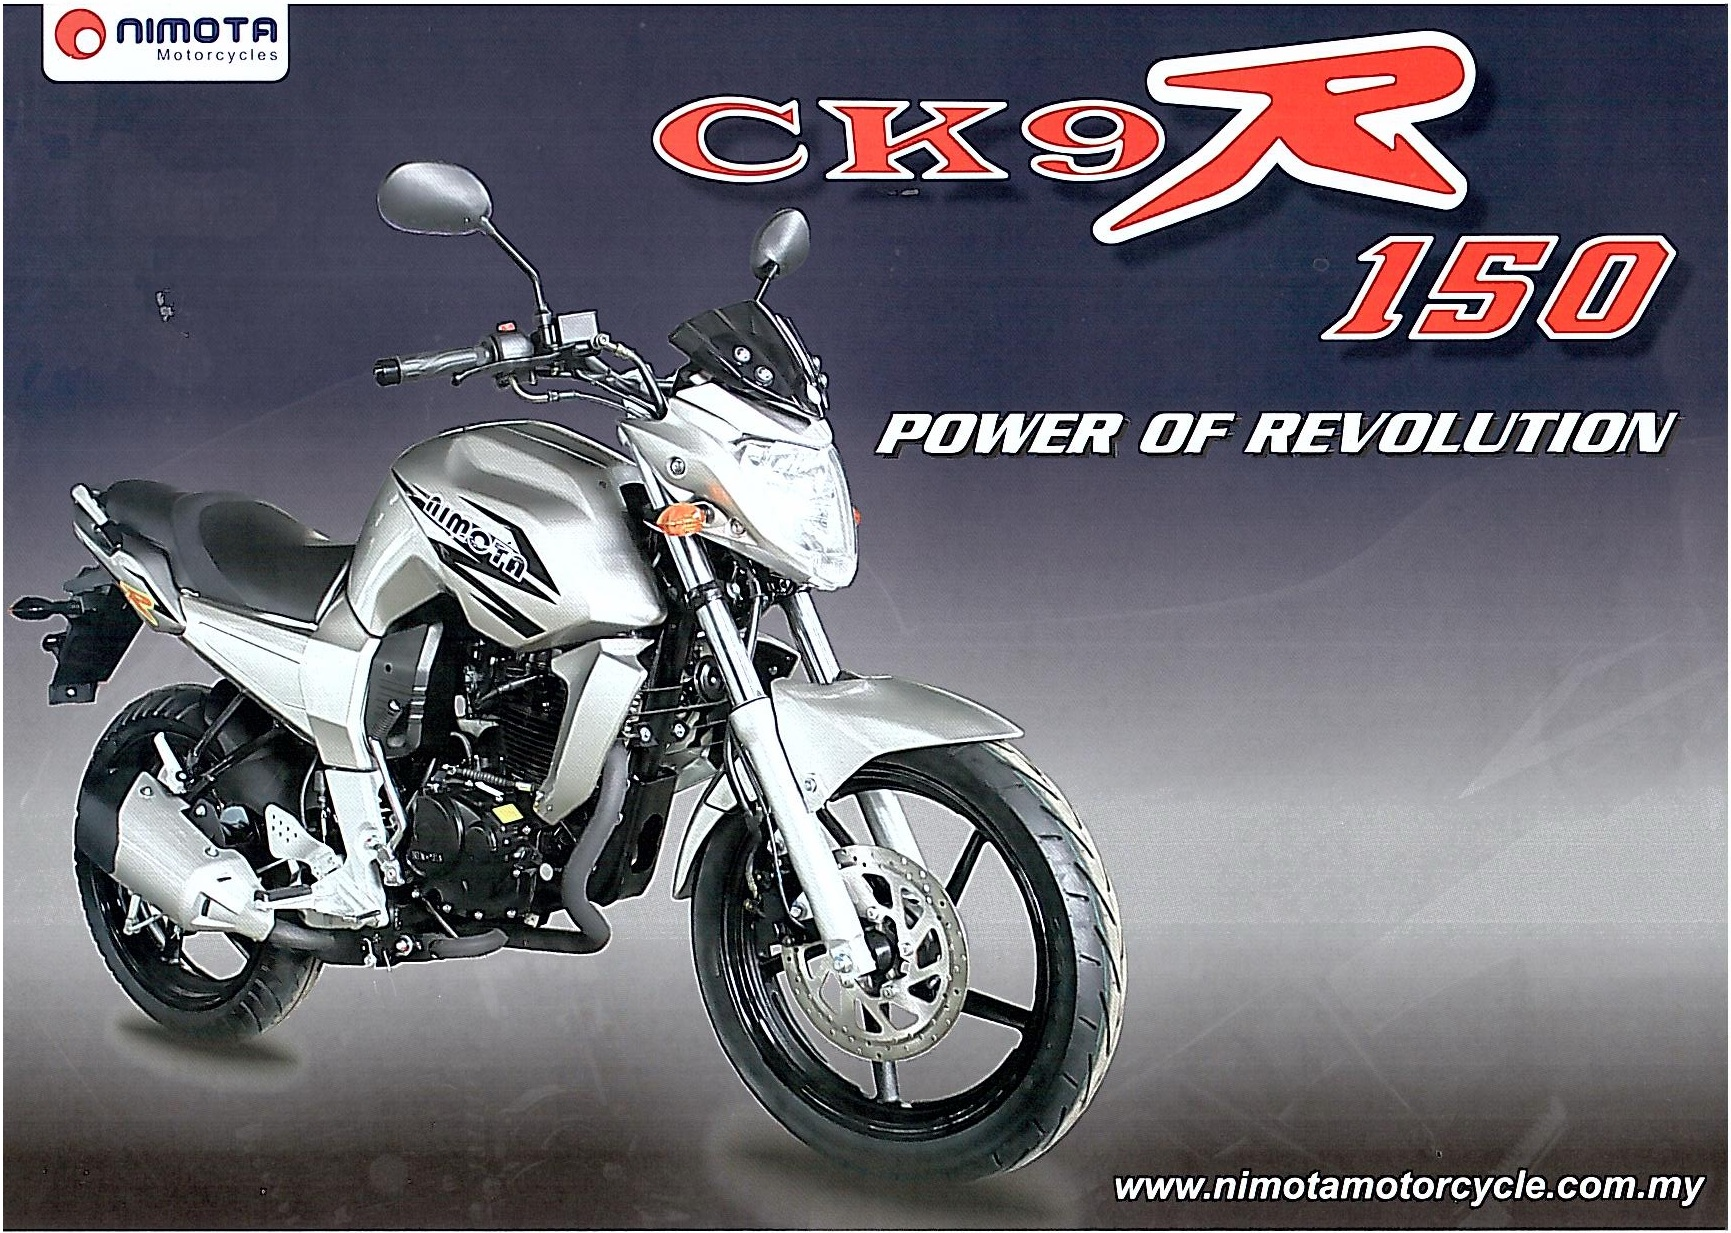 Mudah My Motorcycle | Motorcycle Review and Galleries